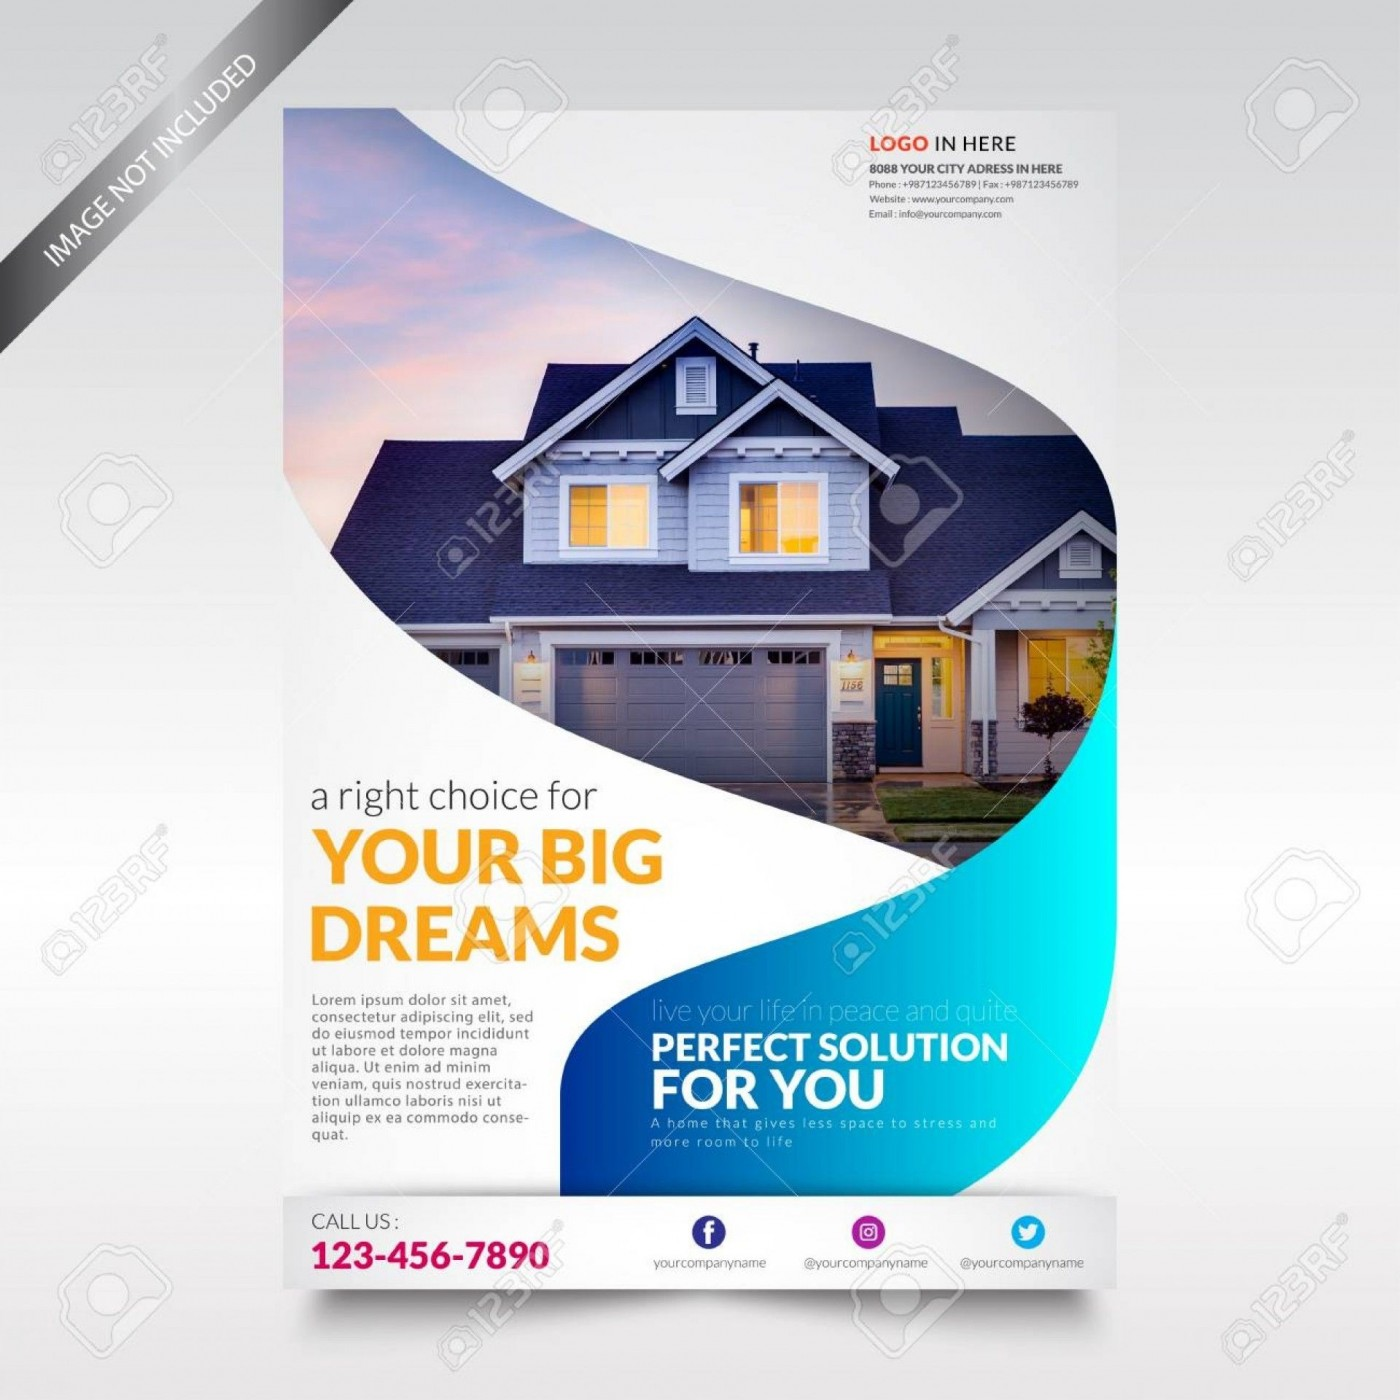 001 Unusual Real Estate Advertising Template Image  Ad Newspaper Classified1400